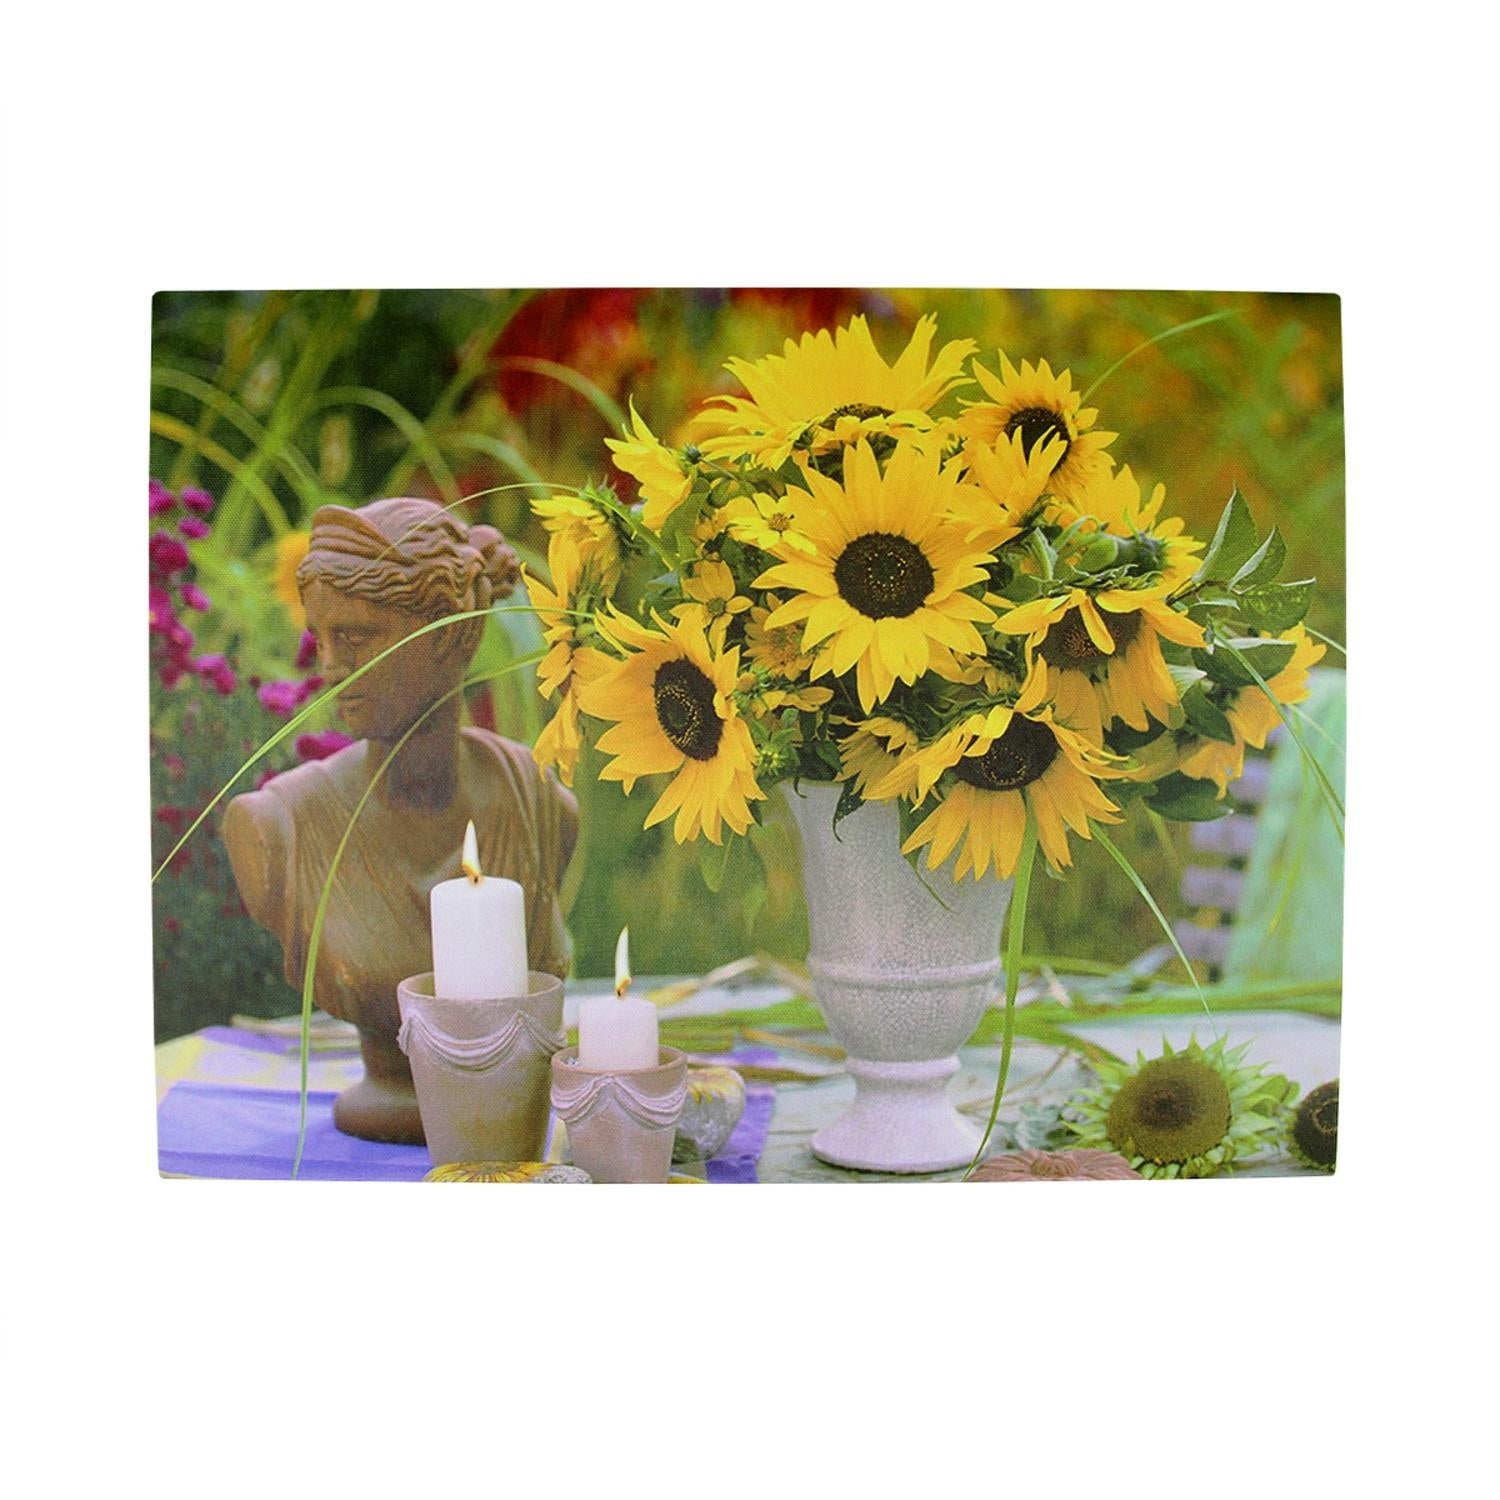 LED Lighted Flickering Garden Candles and Sunflower Vase Canvas Wall ...